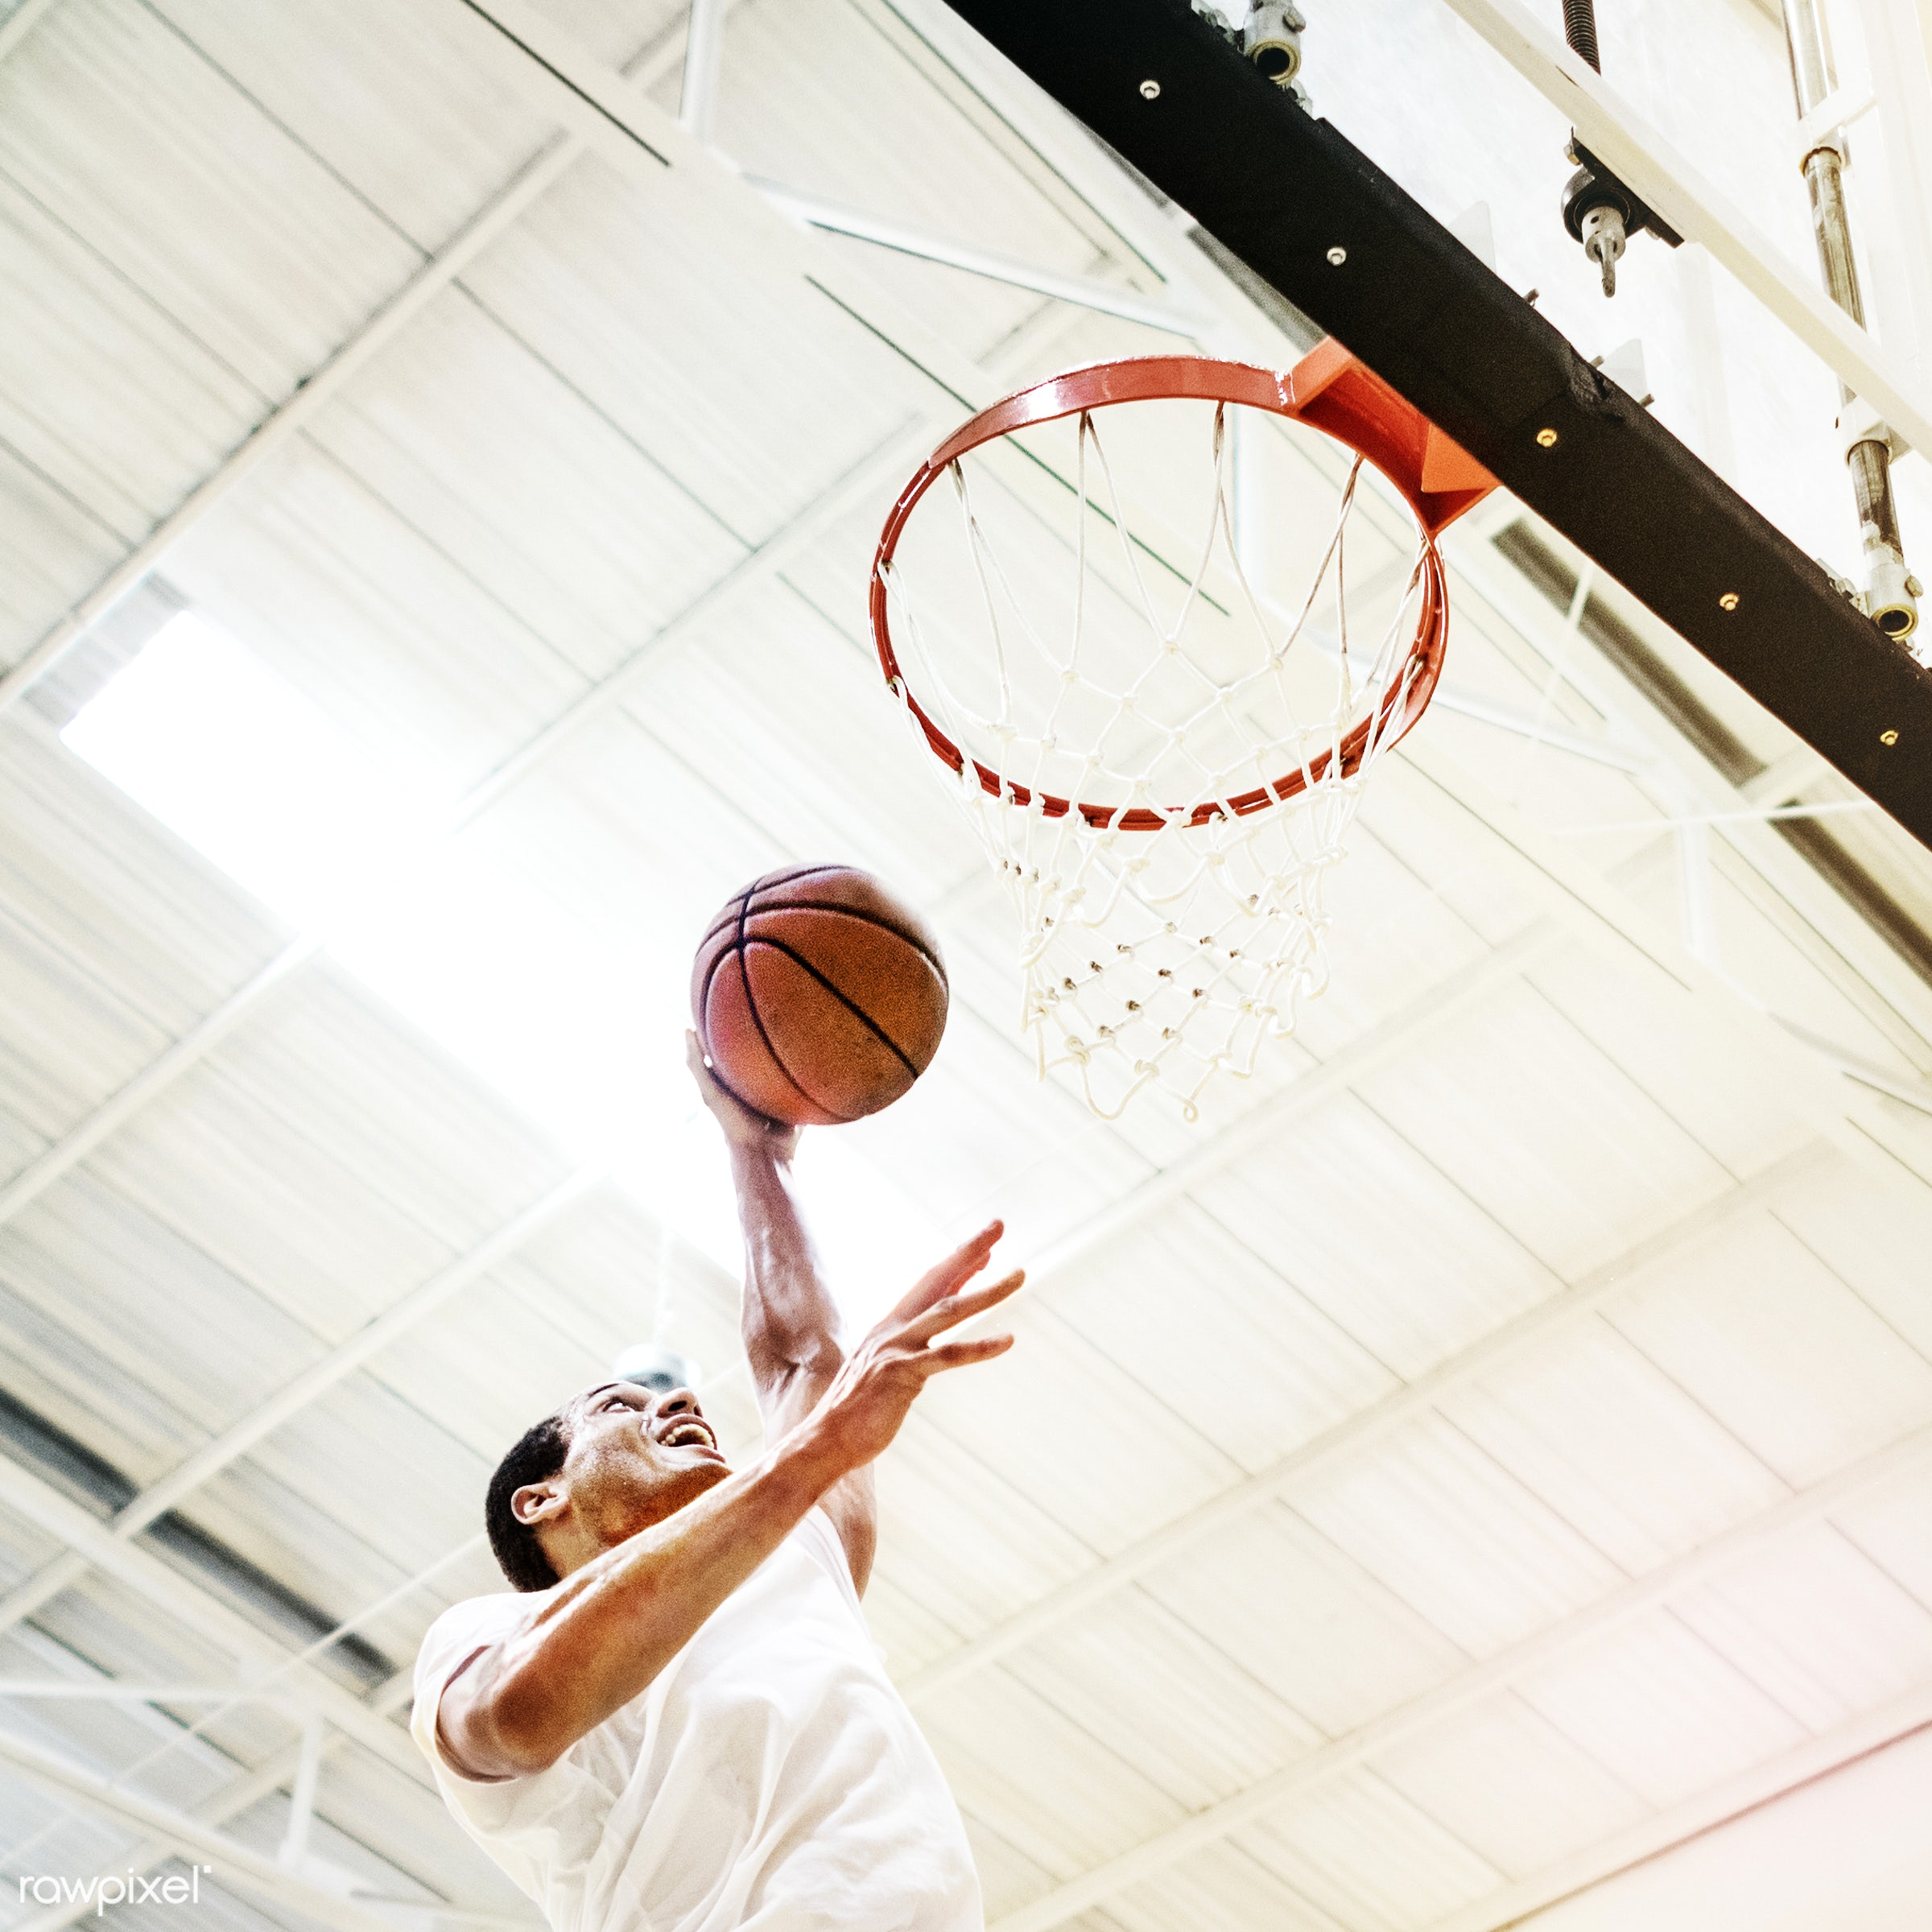 activity, alone, ball, basketball, boy, caucasian, court, dunk, exercise, game, gym, gymnasium, hoop, jump, loop, man, one,...